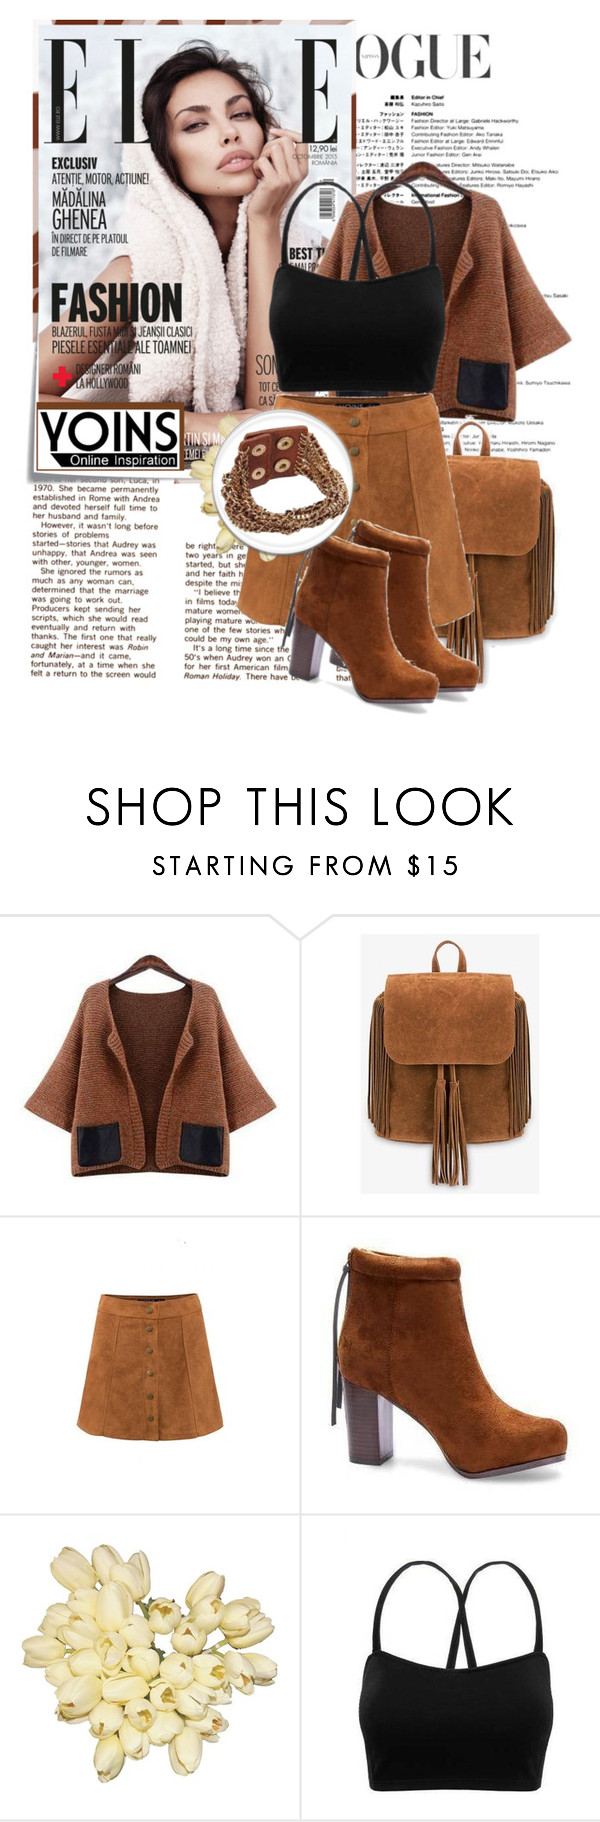 """YOINS 25"" by barbara-996 ❤ liked on Polyvore featuring Post-It, vintage, women's clothing, women's fashion, women, female, woman, misses, juniors and yoins"